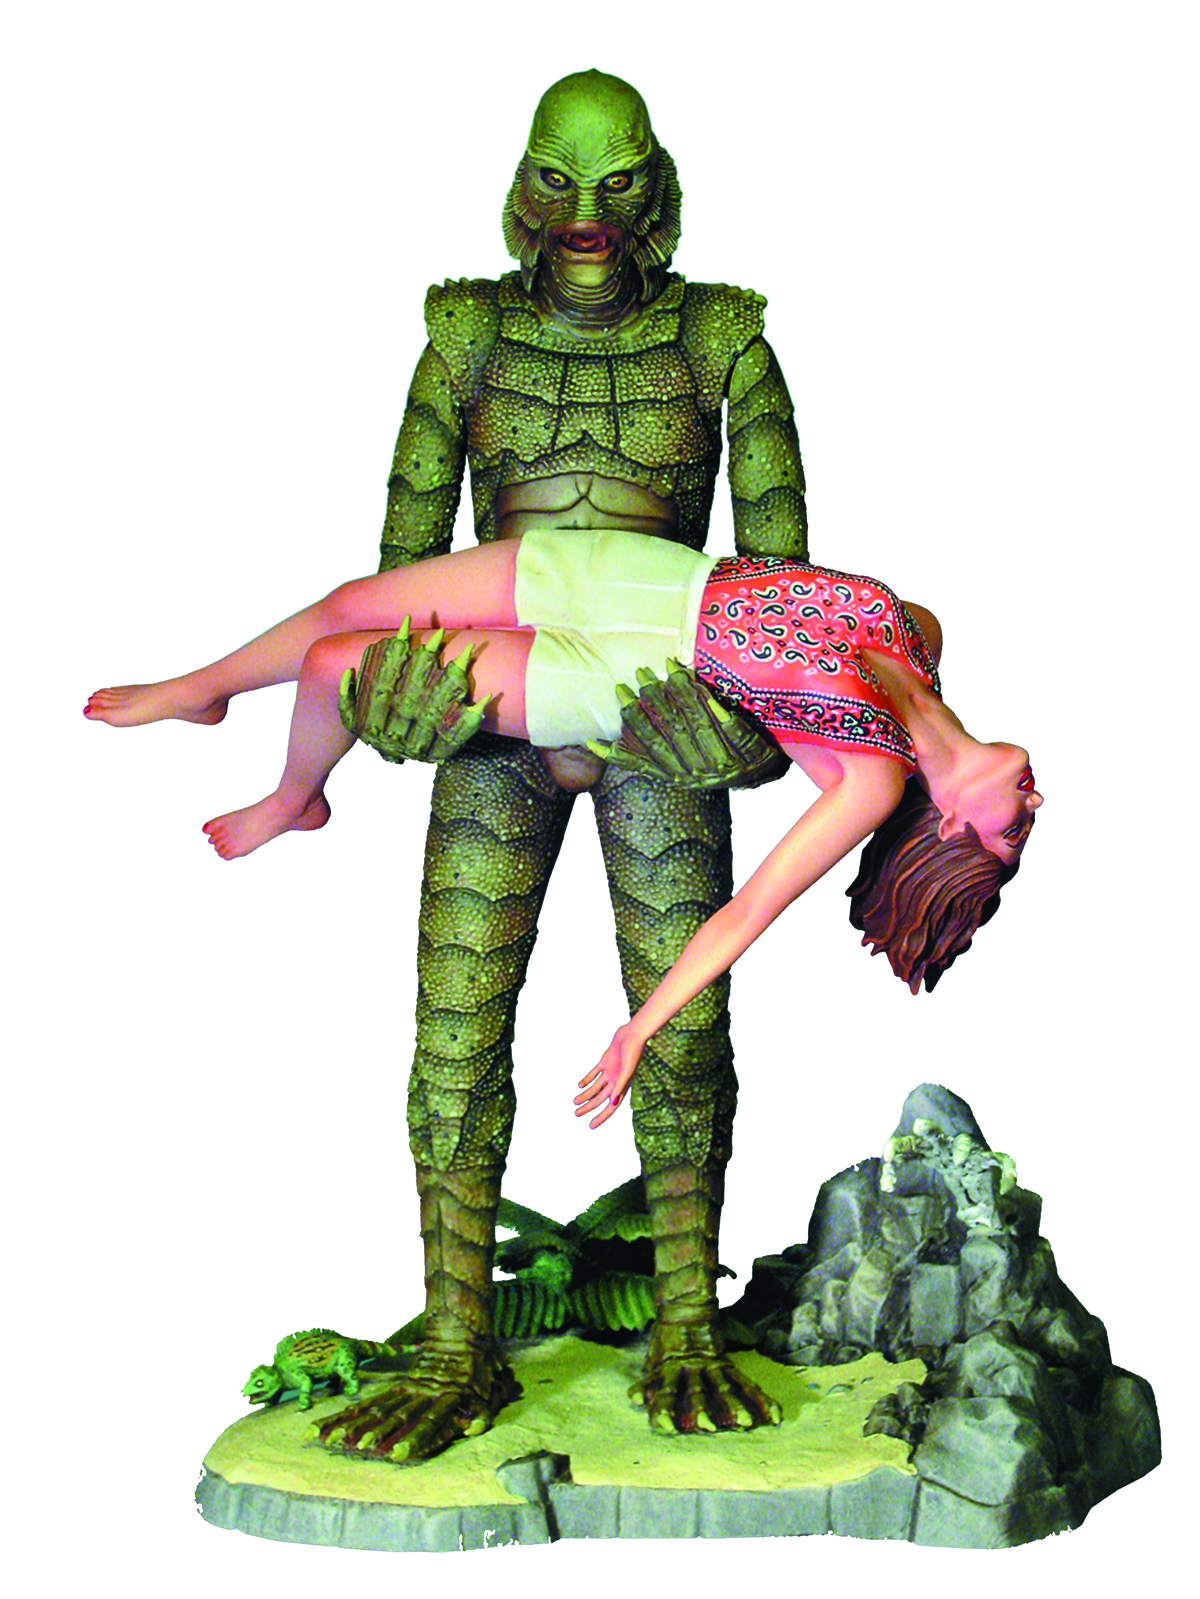 CREATURE FROM THE BLACK LAGOON MODEL KIT